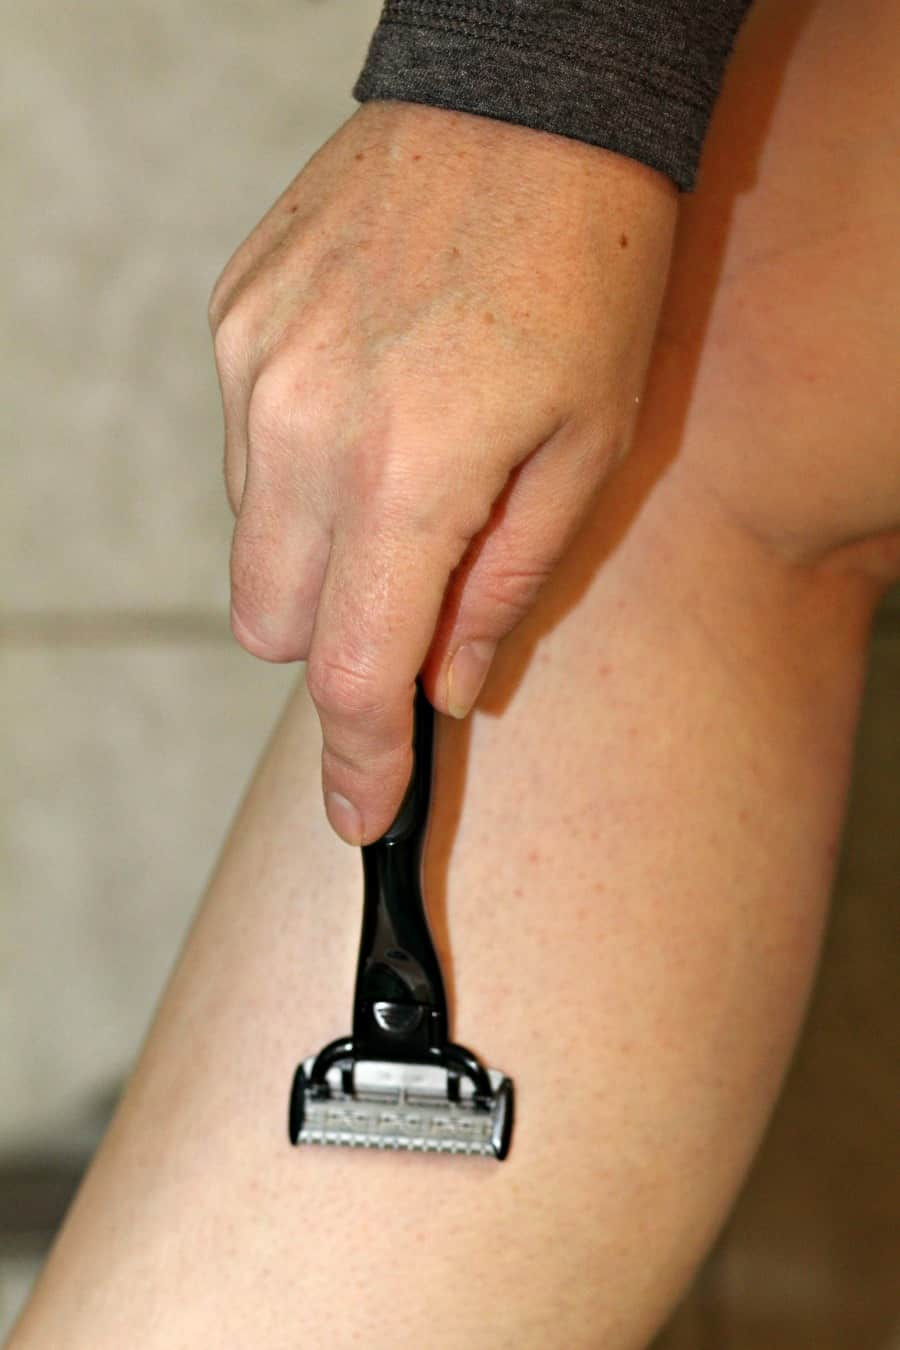 Rose's Razors - the ideal shaving experience